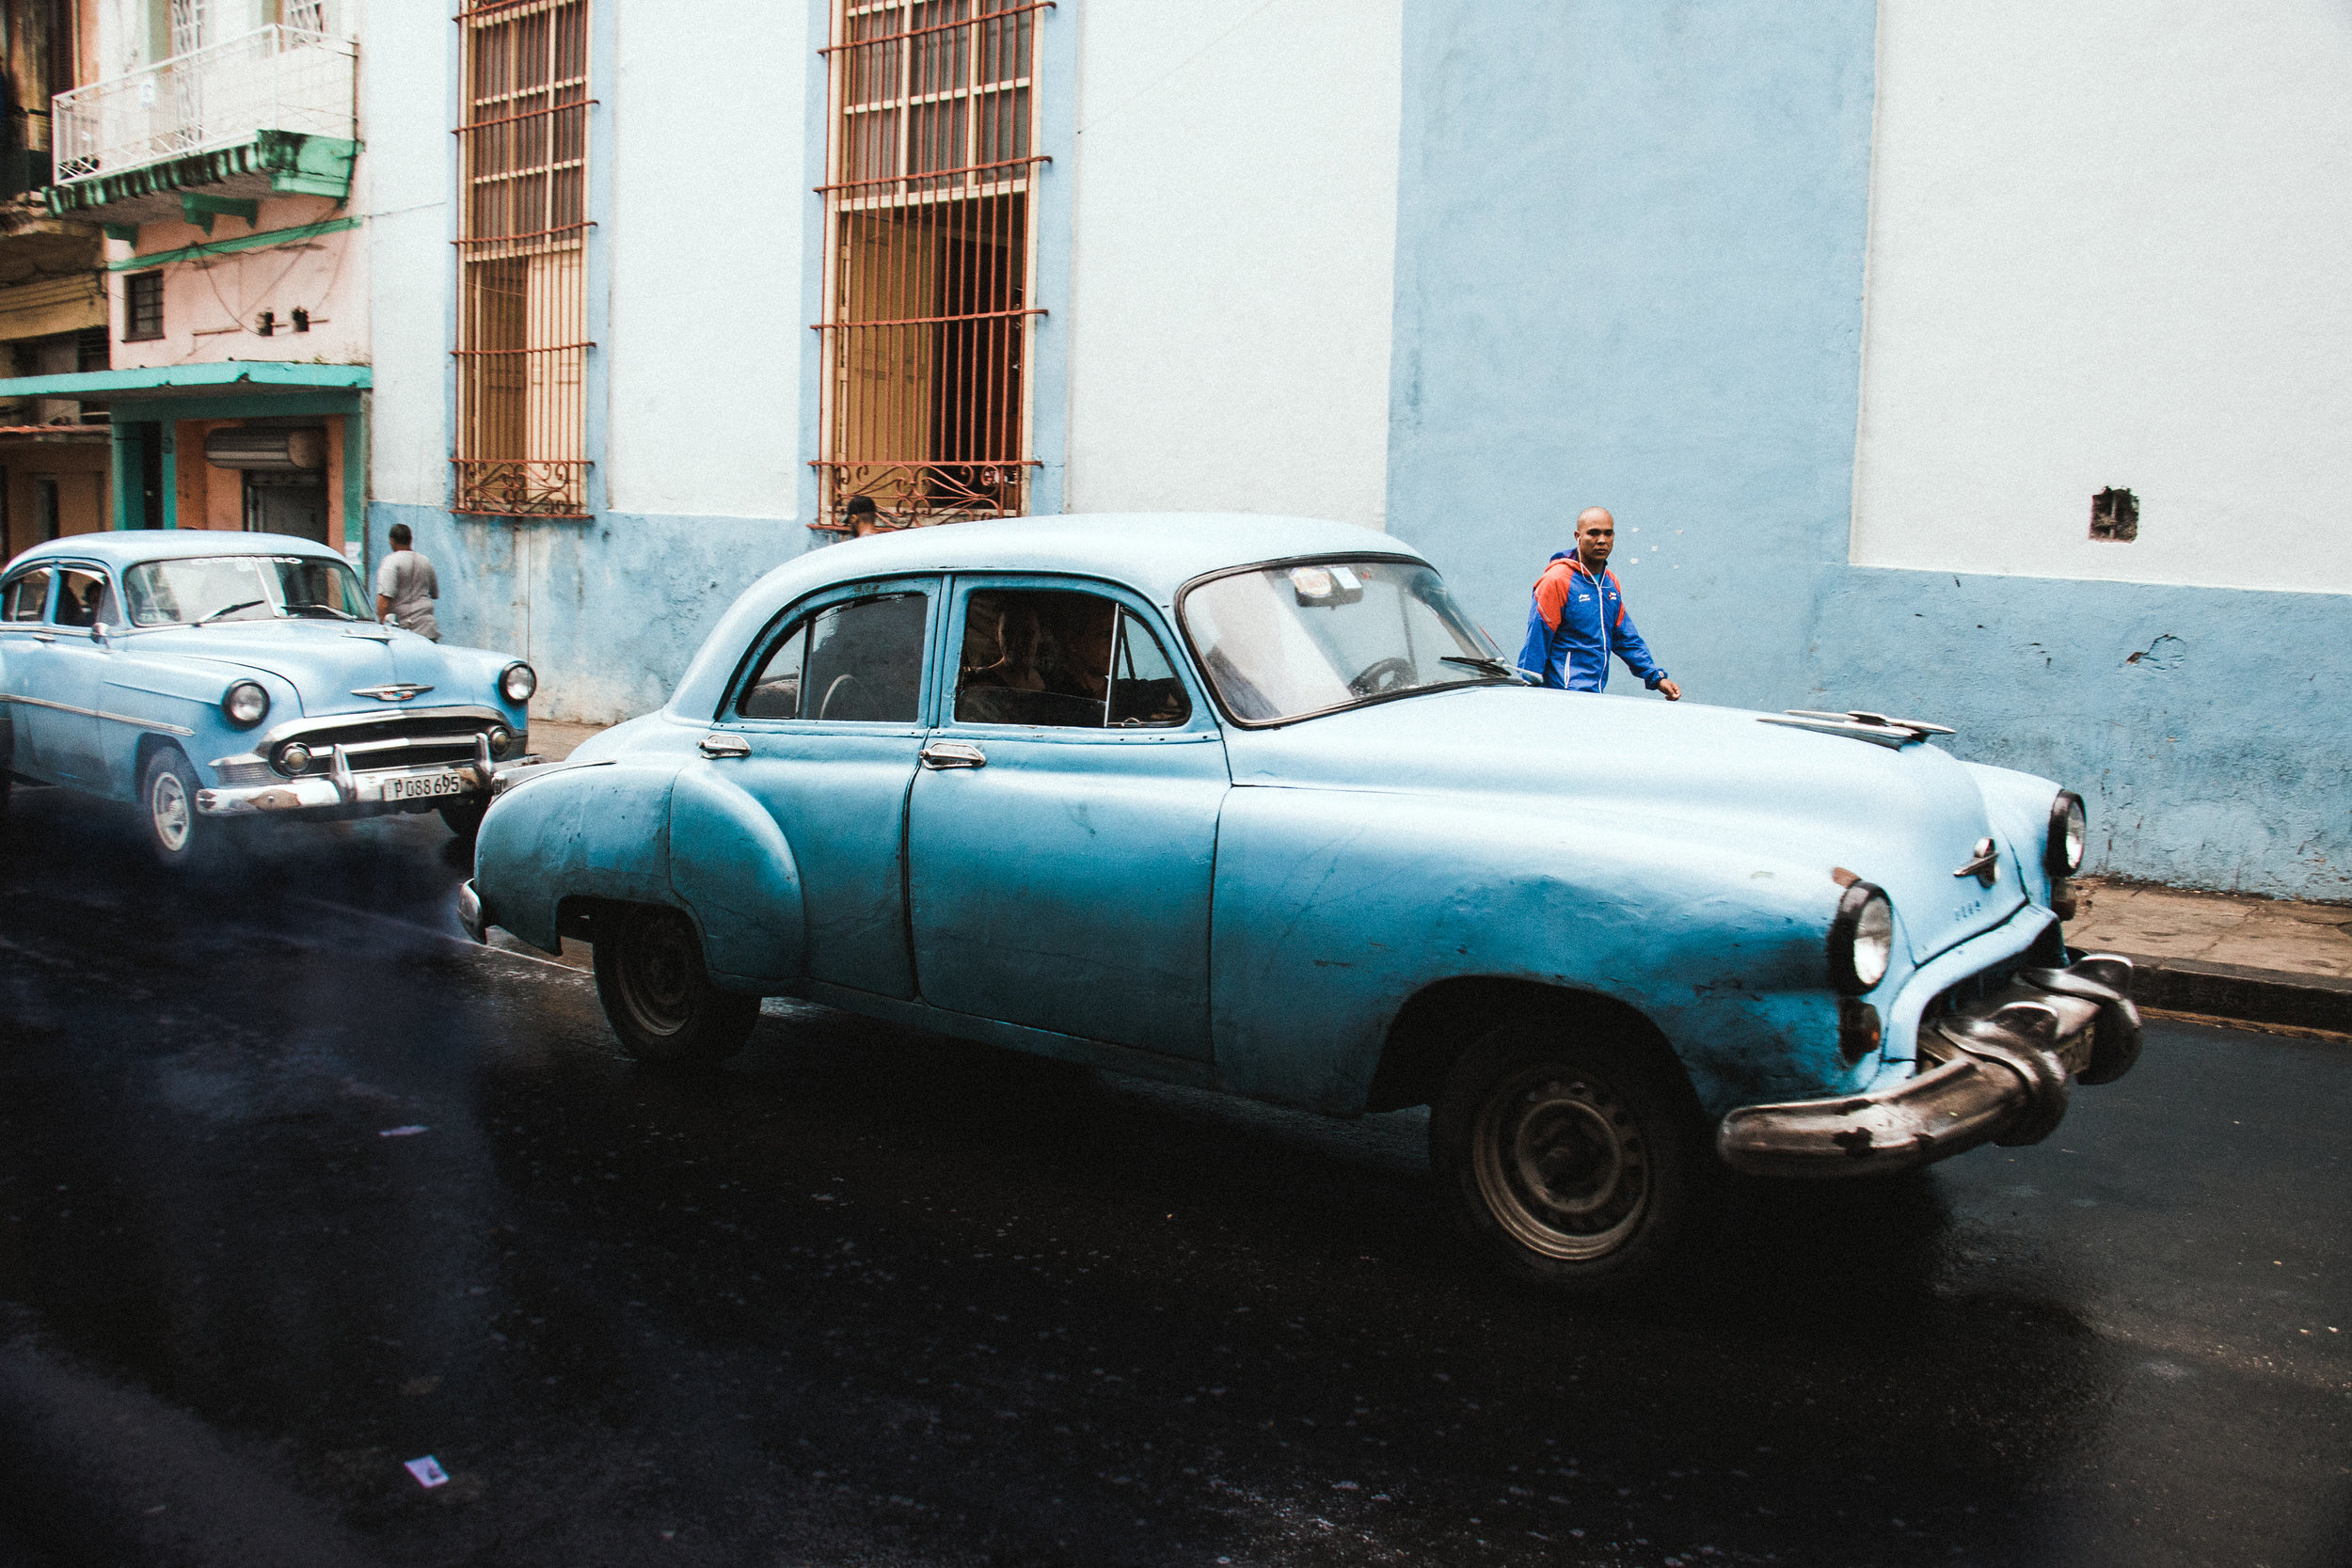 Photo by Kait Labbate for Comuna Travel